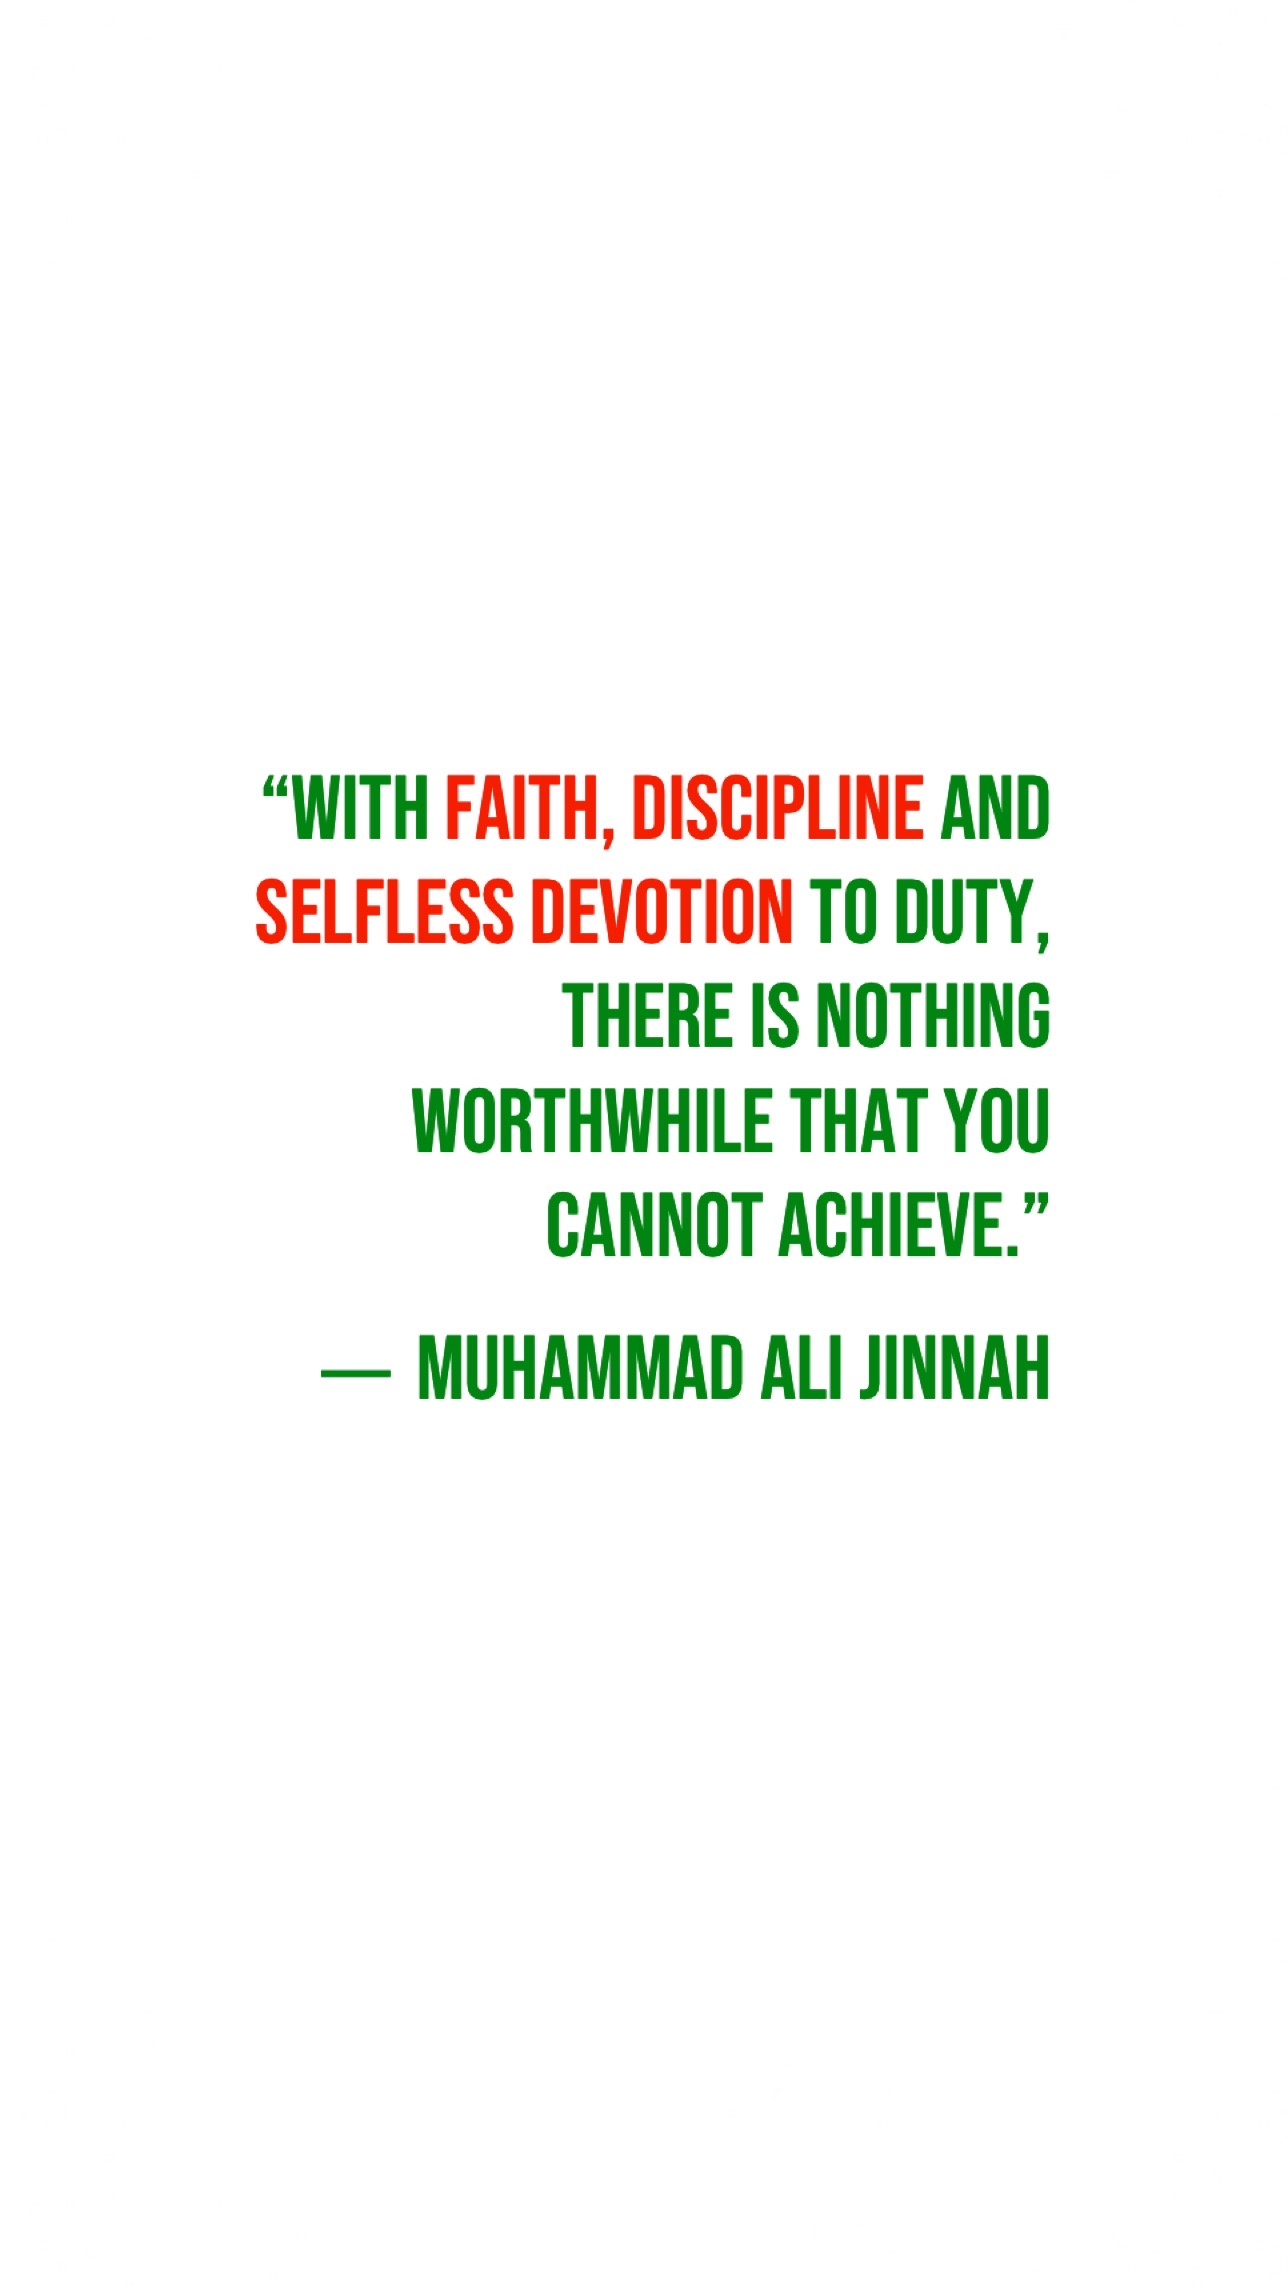 """With faith, discipline and selfless devotion to duty, there is nothing worthwhile that you cannot achieve."" ― Muhammad Ali Jinnah"